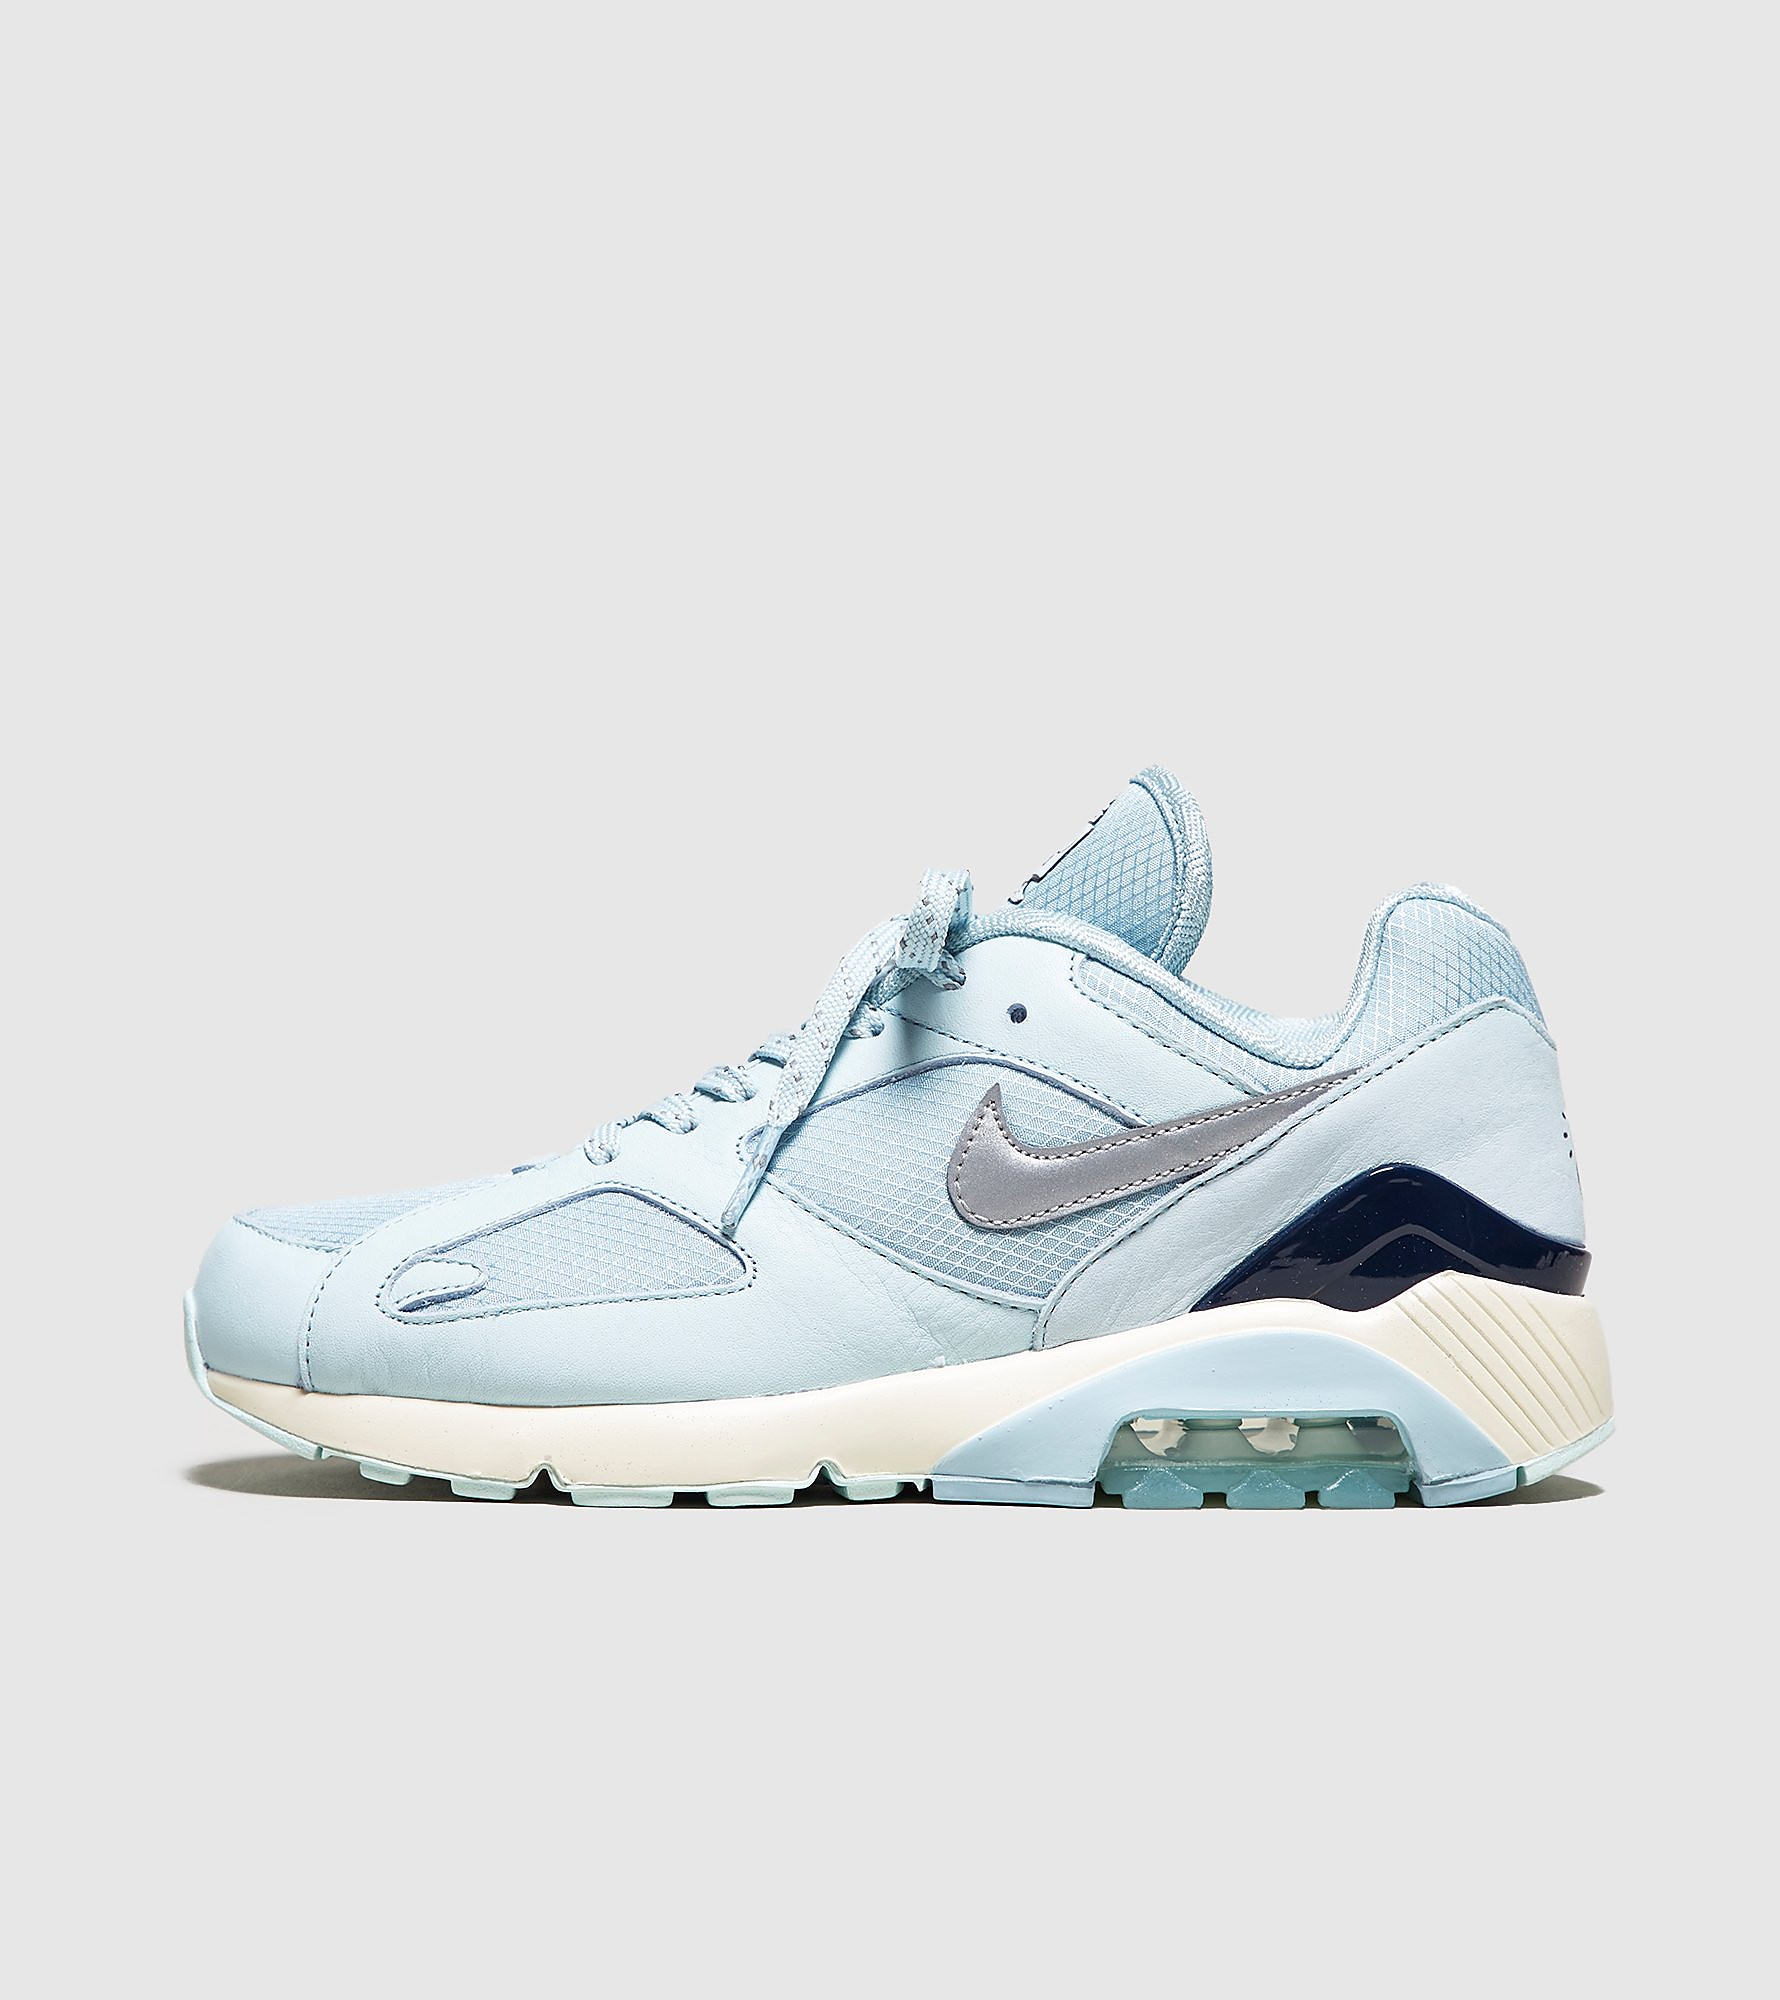 online retailer db6dd 03d66 Nike NIKE AIR MAX 180 FIRE AND ICE WOMENS